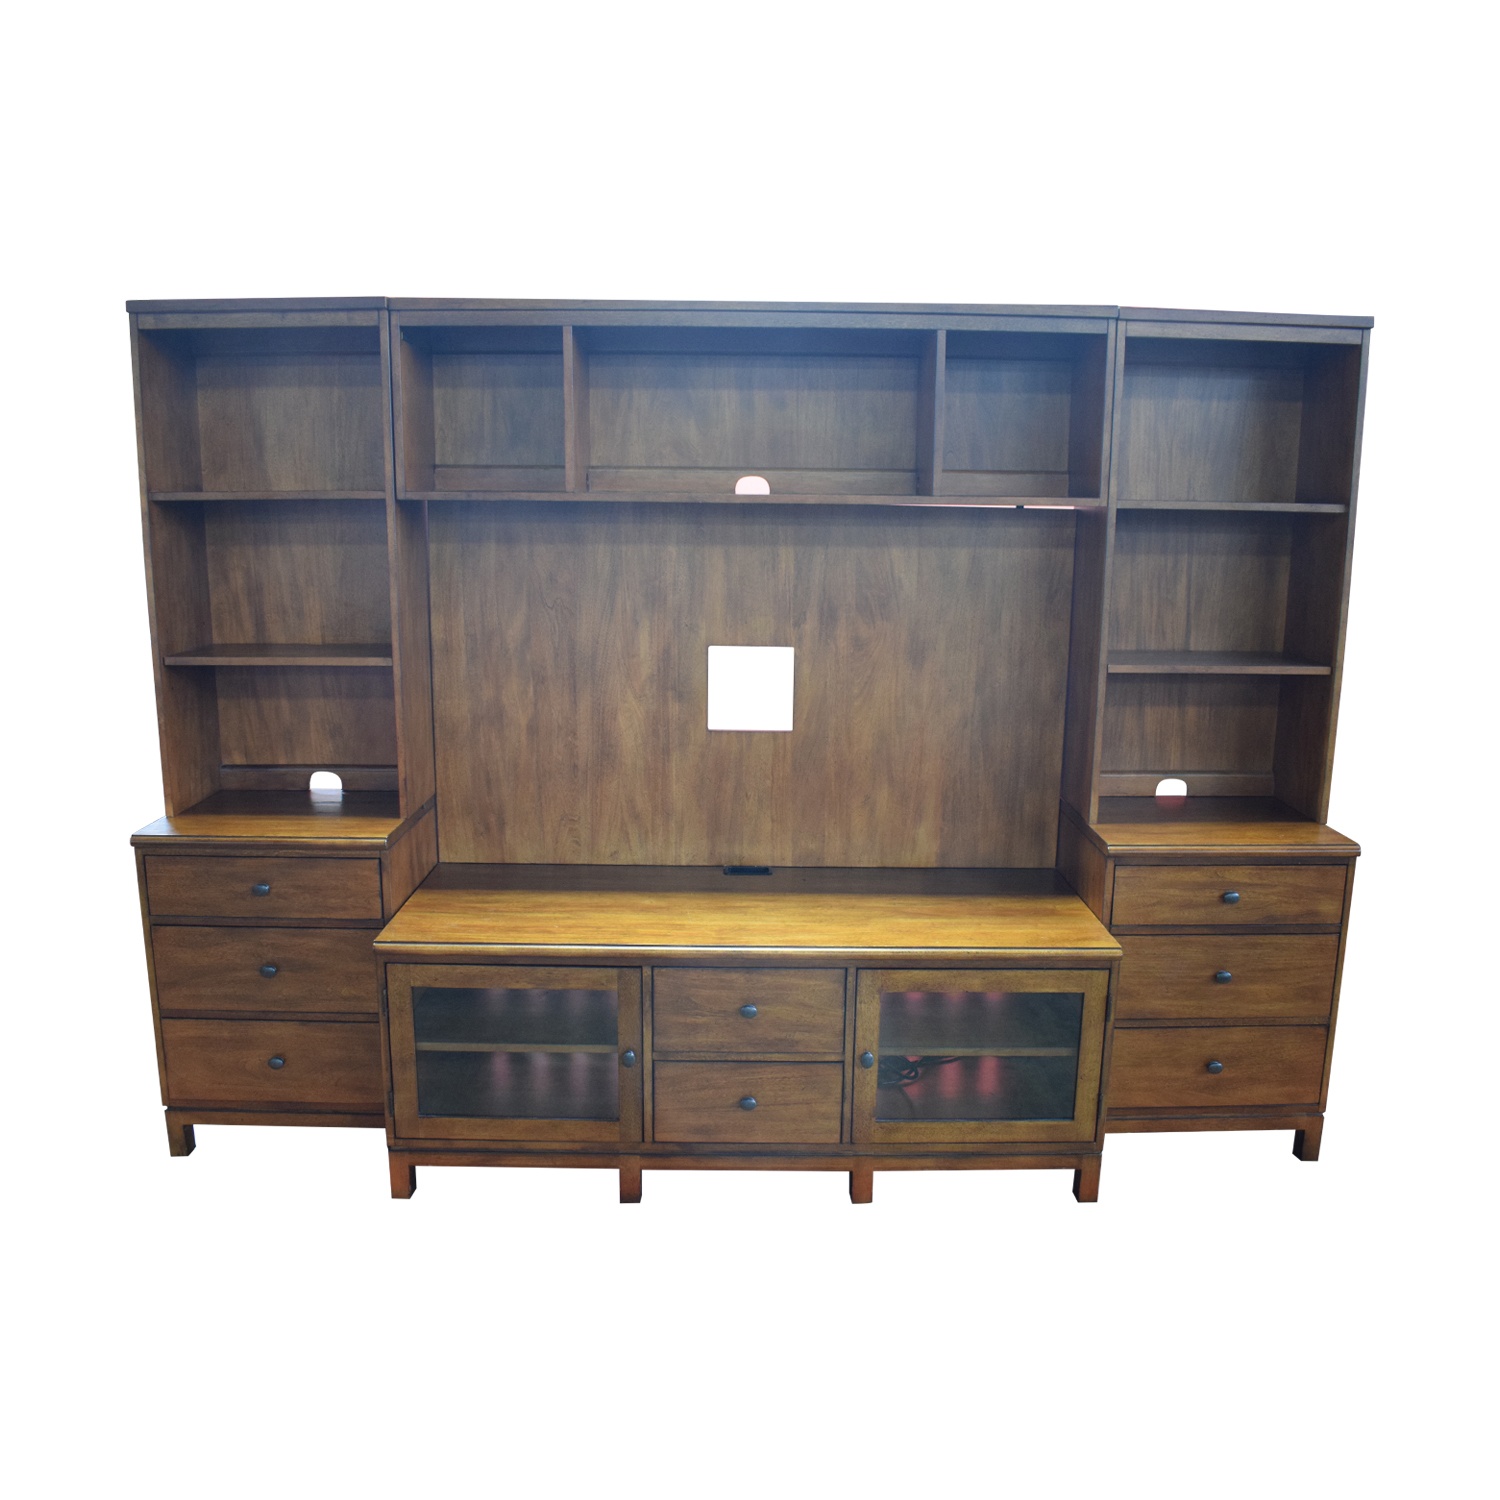 Ethan Allen Wood Media Center with Drawers and Shelves / Media Units